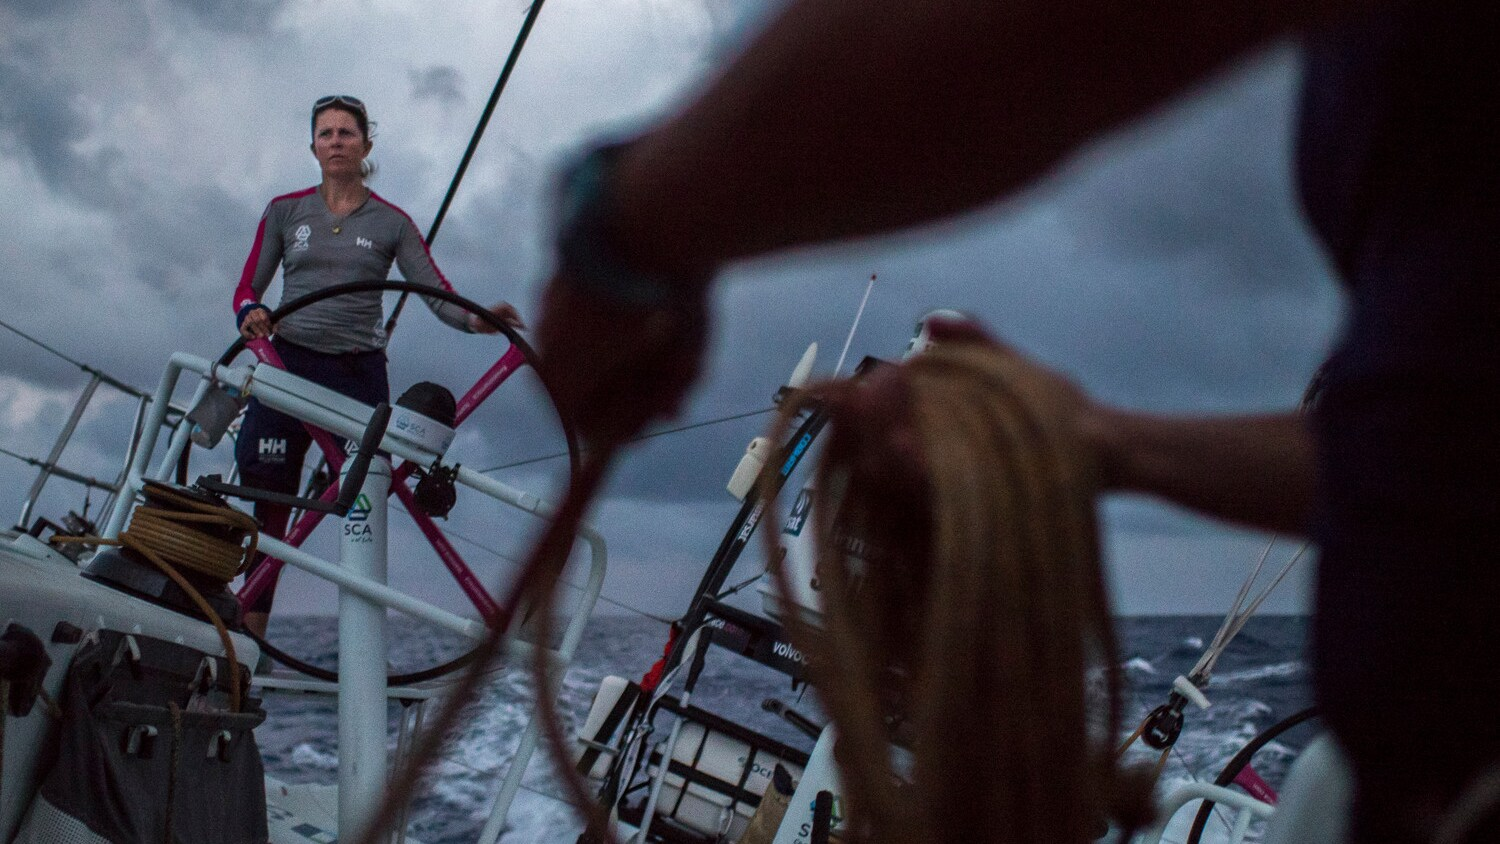 Sam Davies, skipper of Team SCA